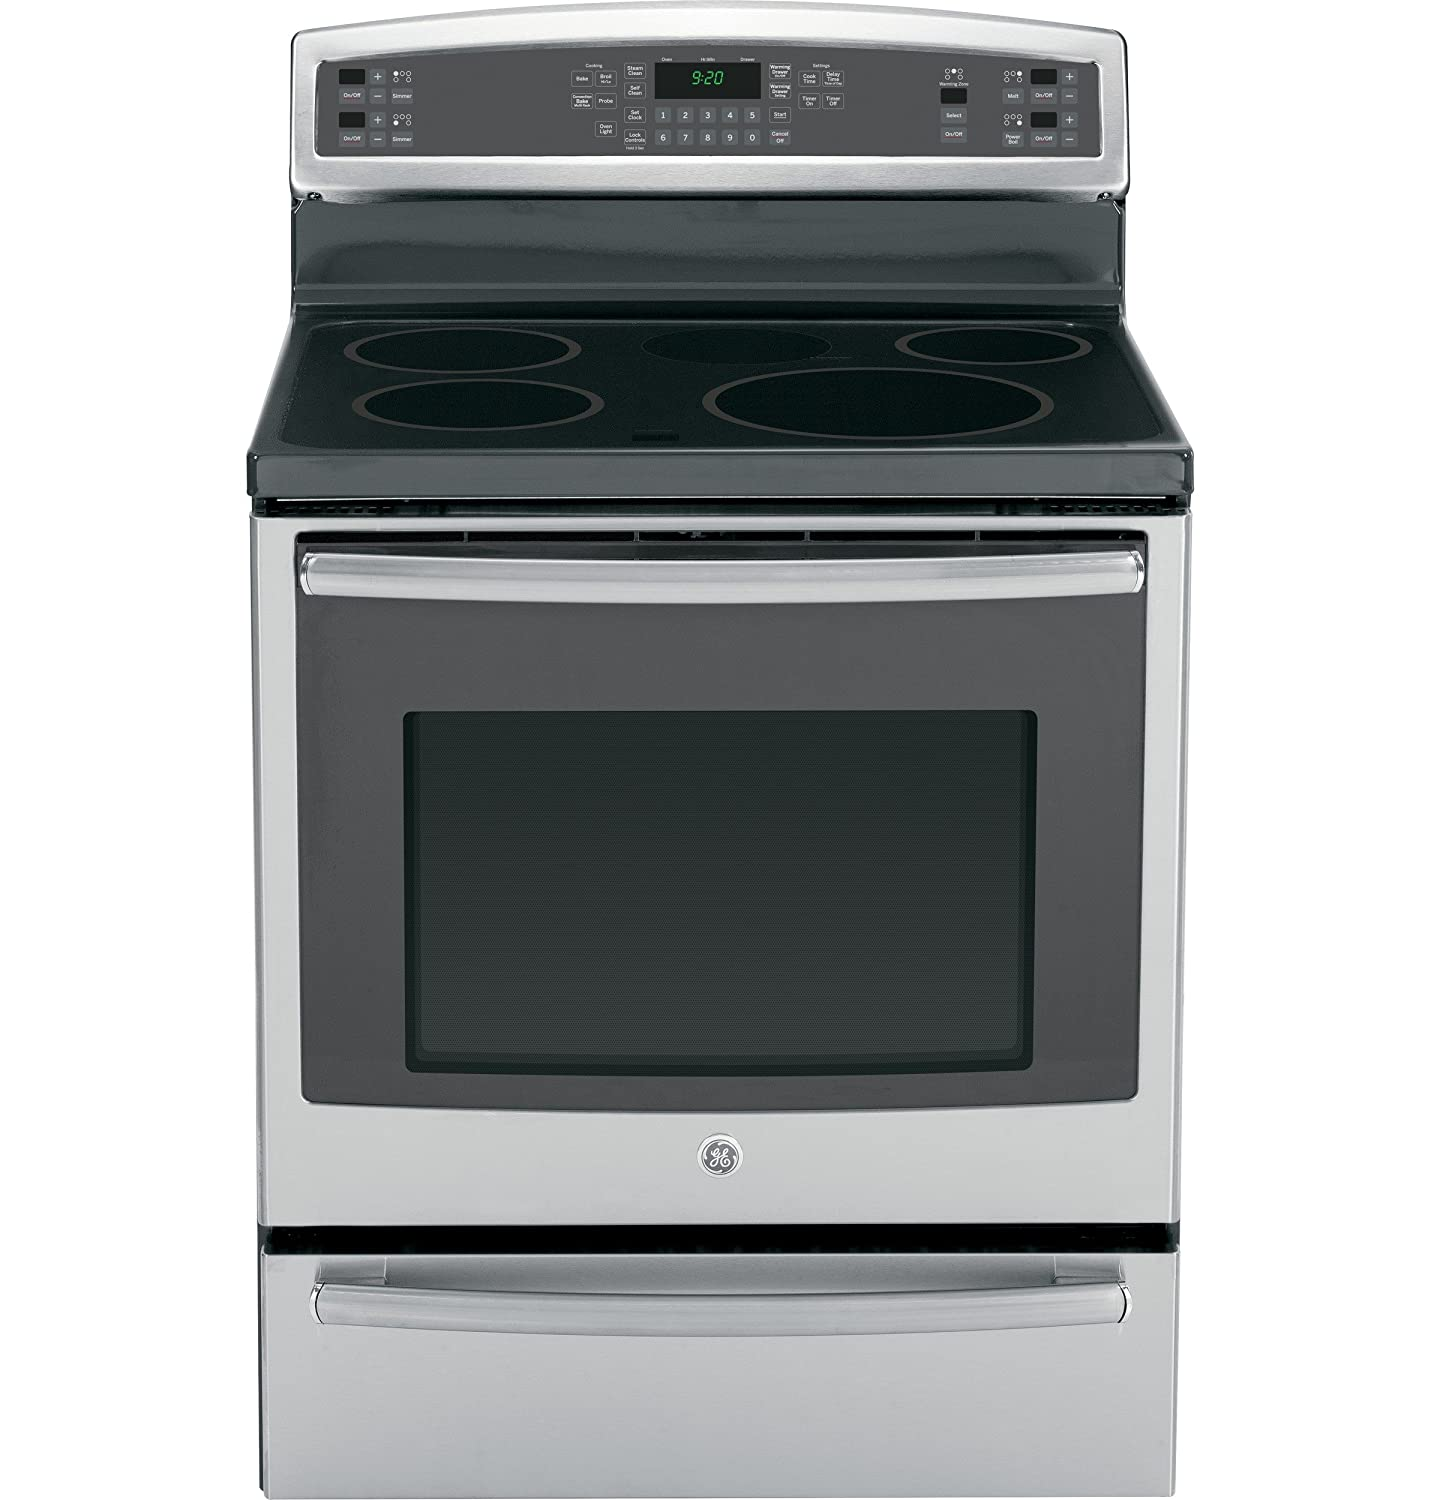 d6fba297c596 This freestanding range features touch controls that make it easy to use  and is part of GE s Profile line. With built-in self-cleaning and  convection ...